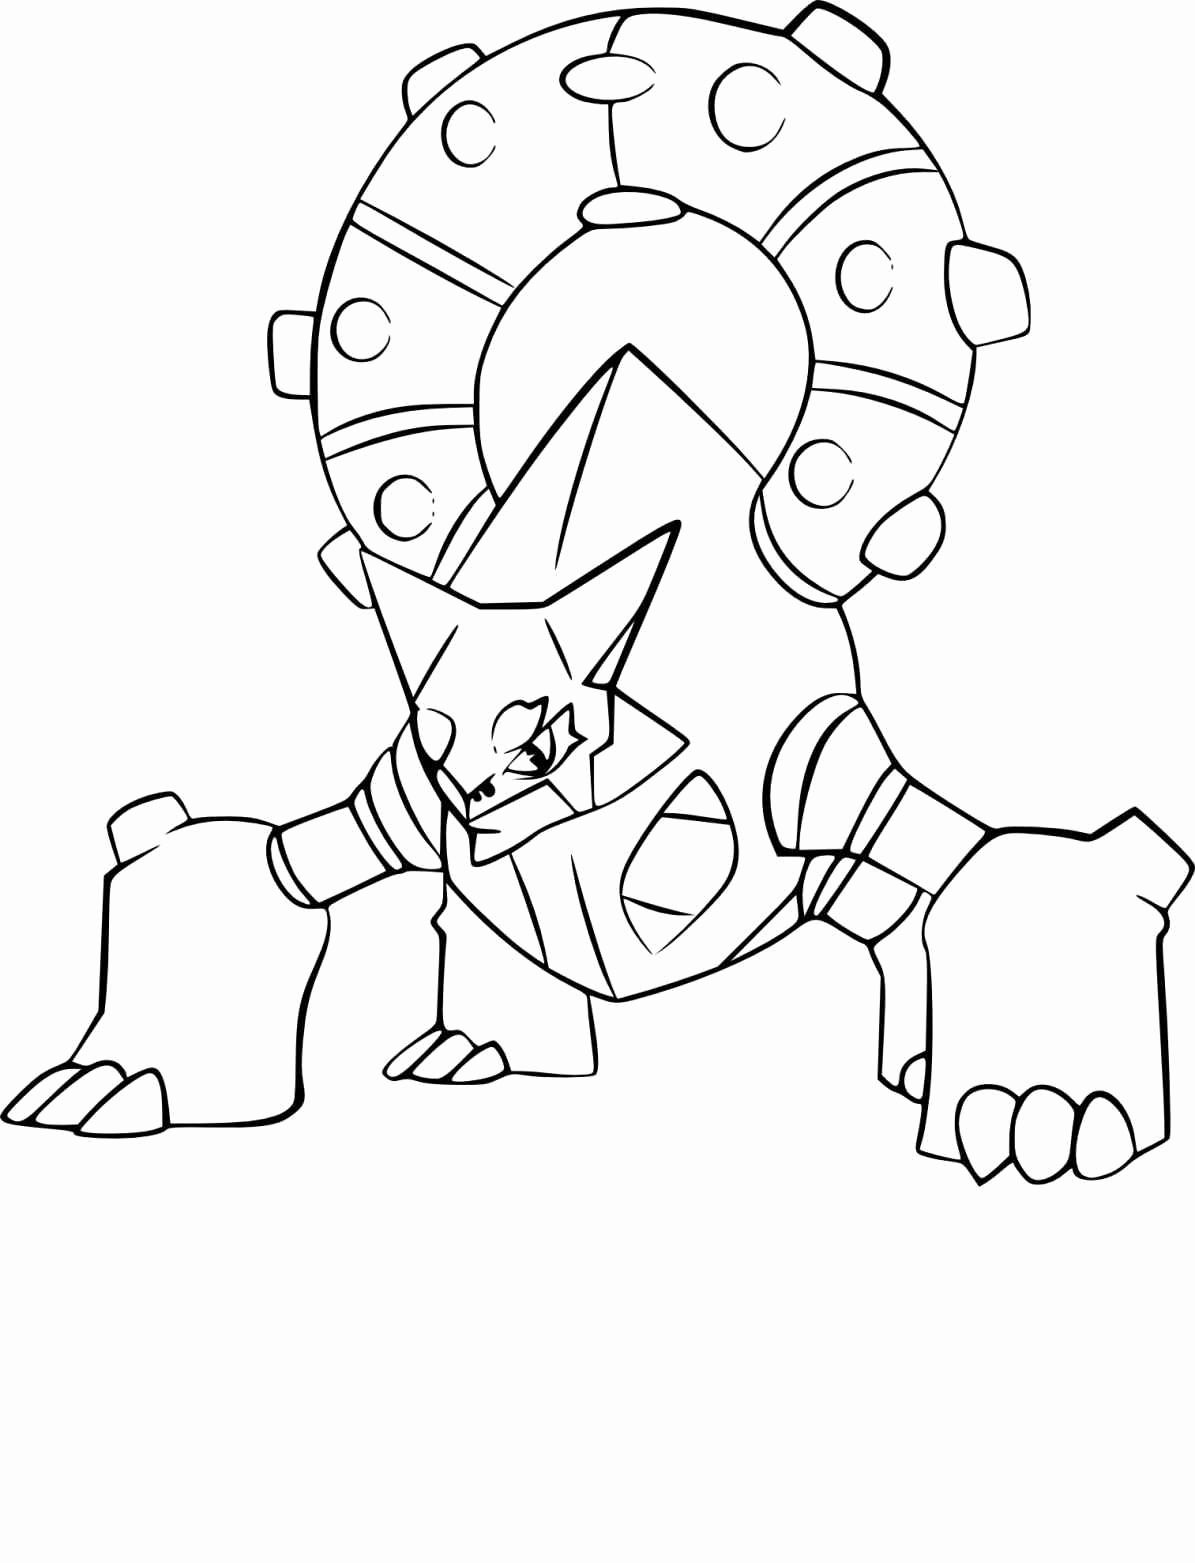 Pokemon Kids Coloring Pages Heatran In 2020 Pokemon Coloring Pages Pokemon Coloring Cartoon Coloring Pages